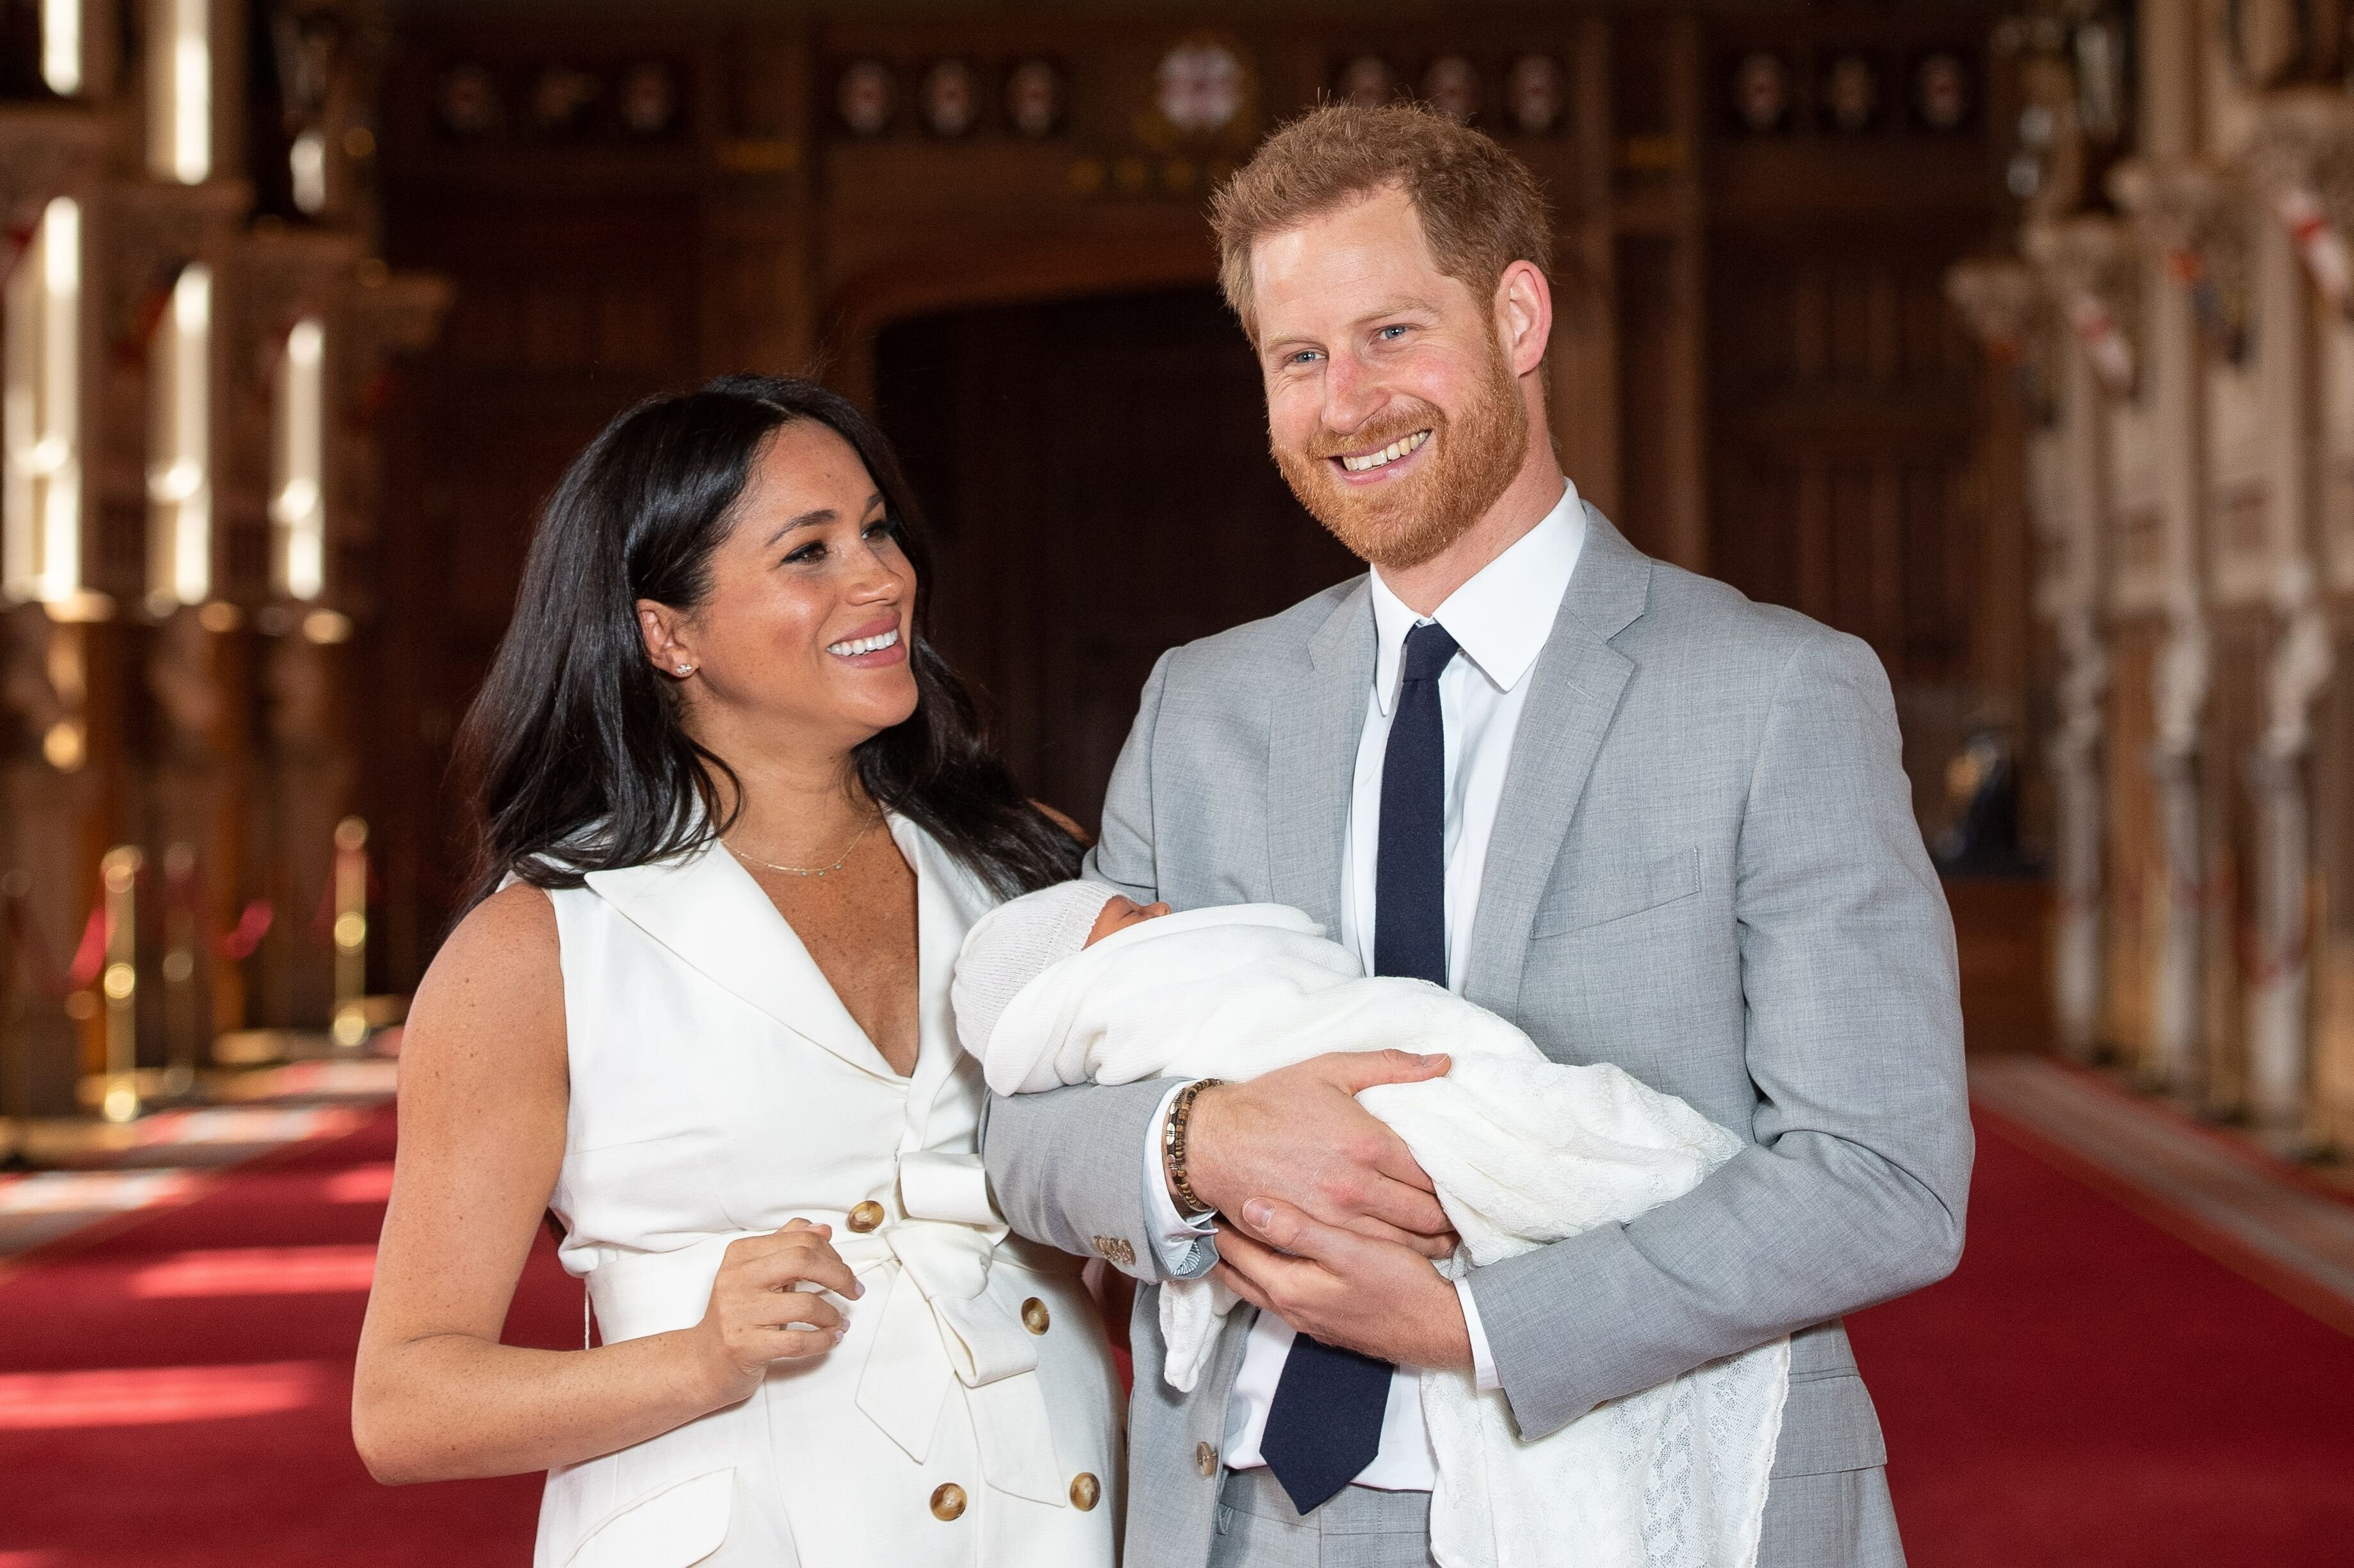 Meghan Markle and Prince Harry introduce baby Archie Harrison at St. George's Hall. | Source: Getty Images